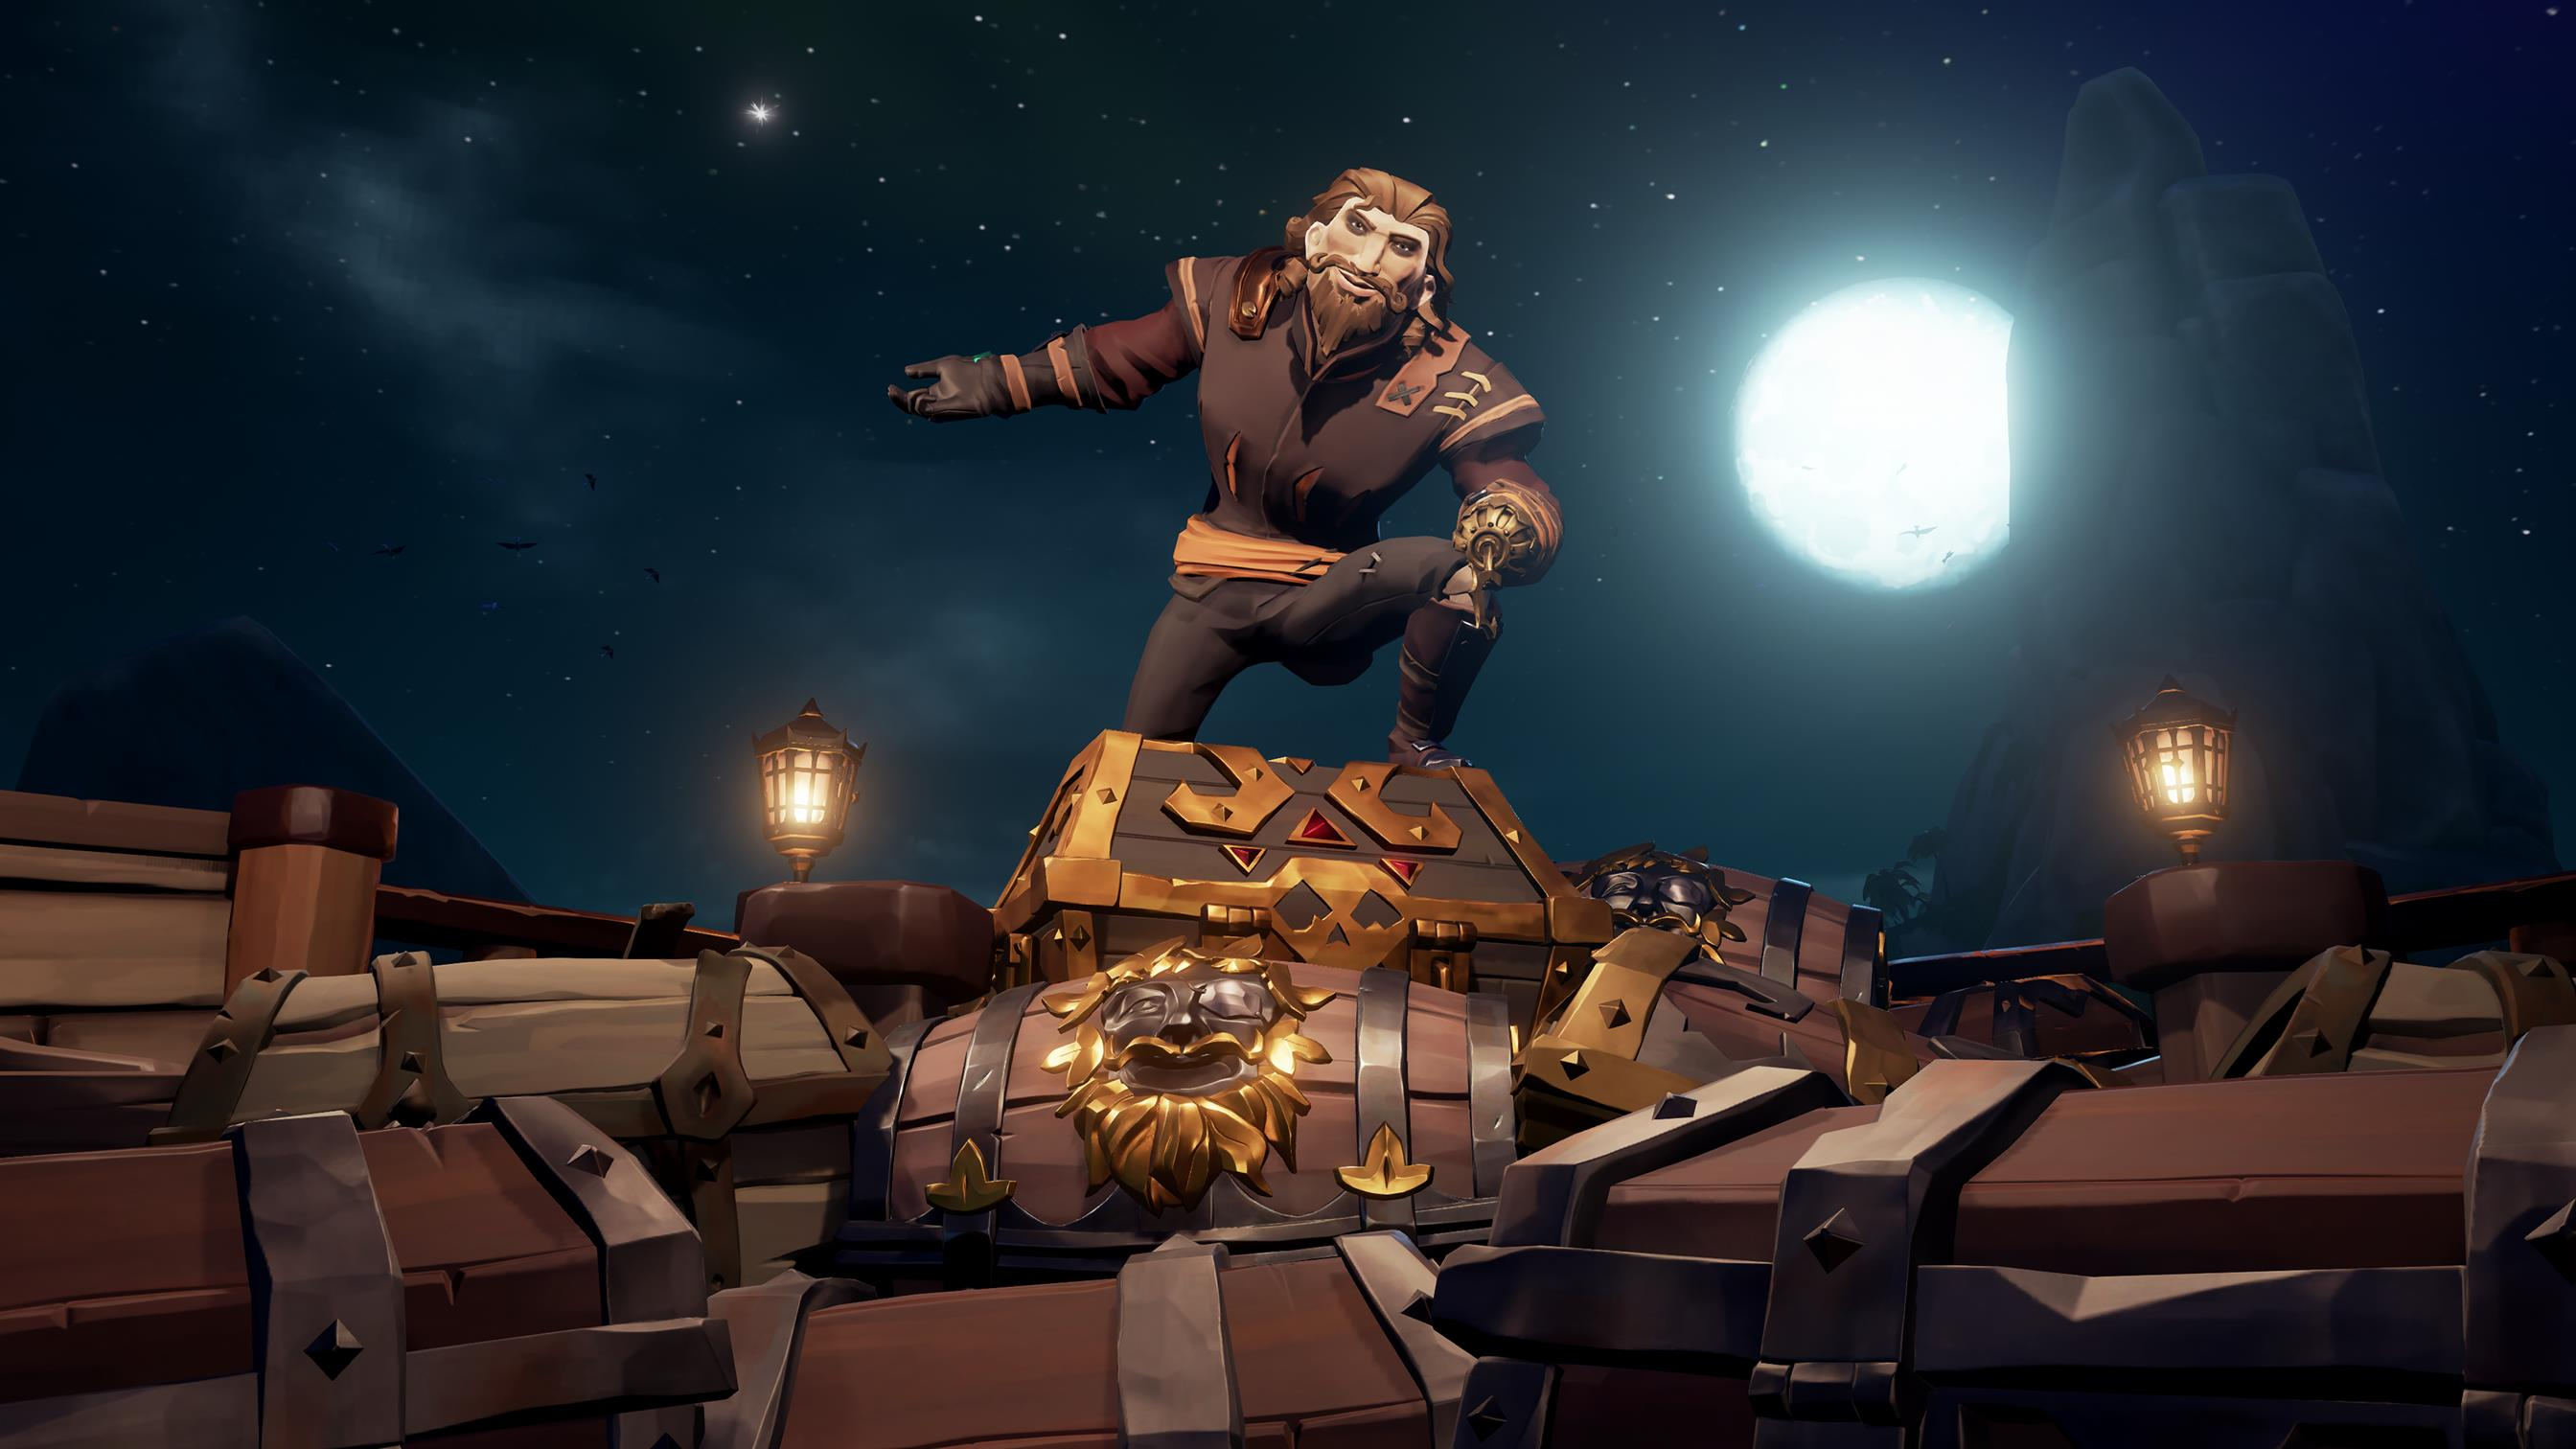 Sea Of Thieves Missing Gold And Reputation Can Be Fixed